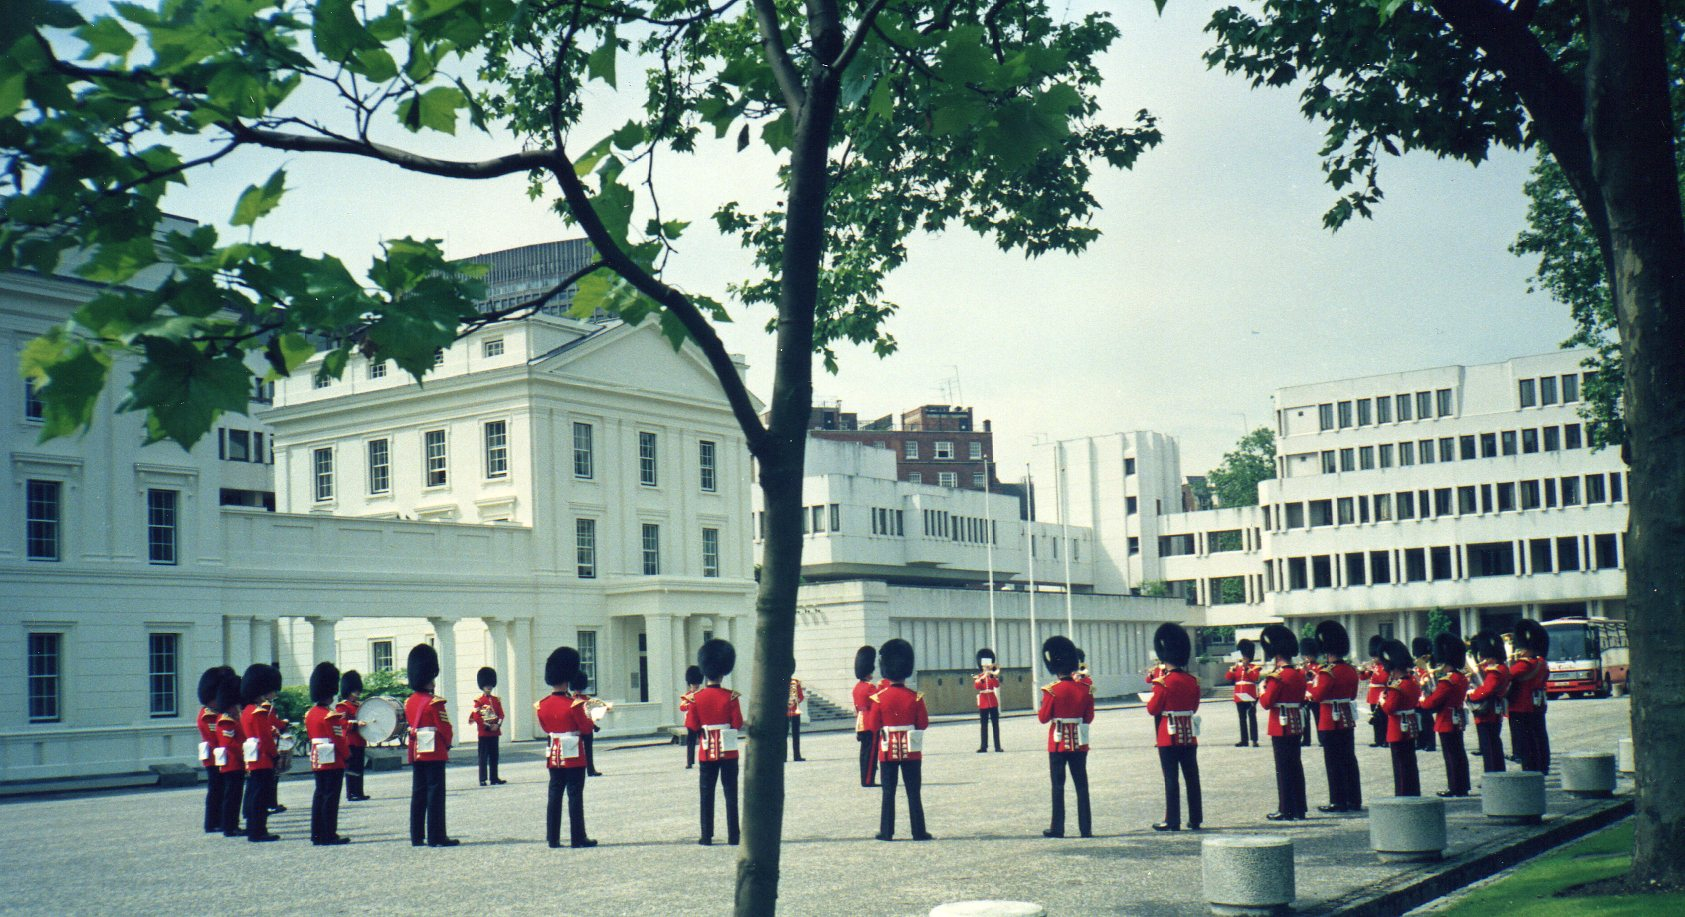 Dress rehearsal - sidelines -